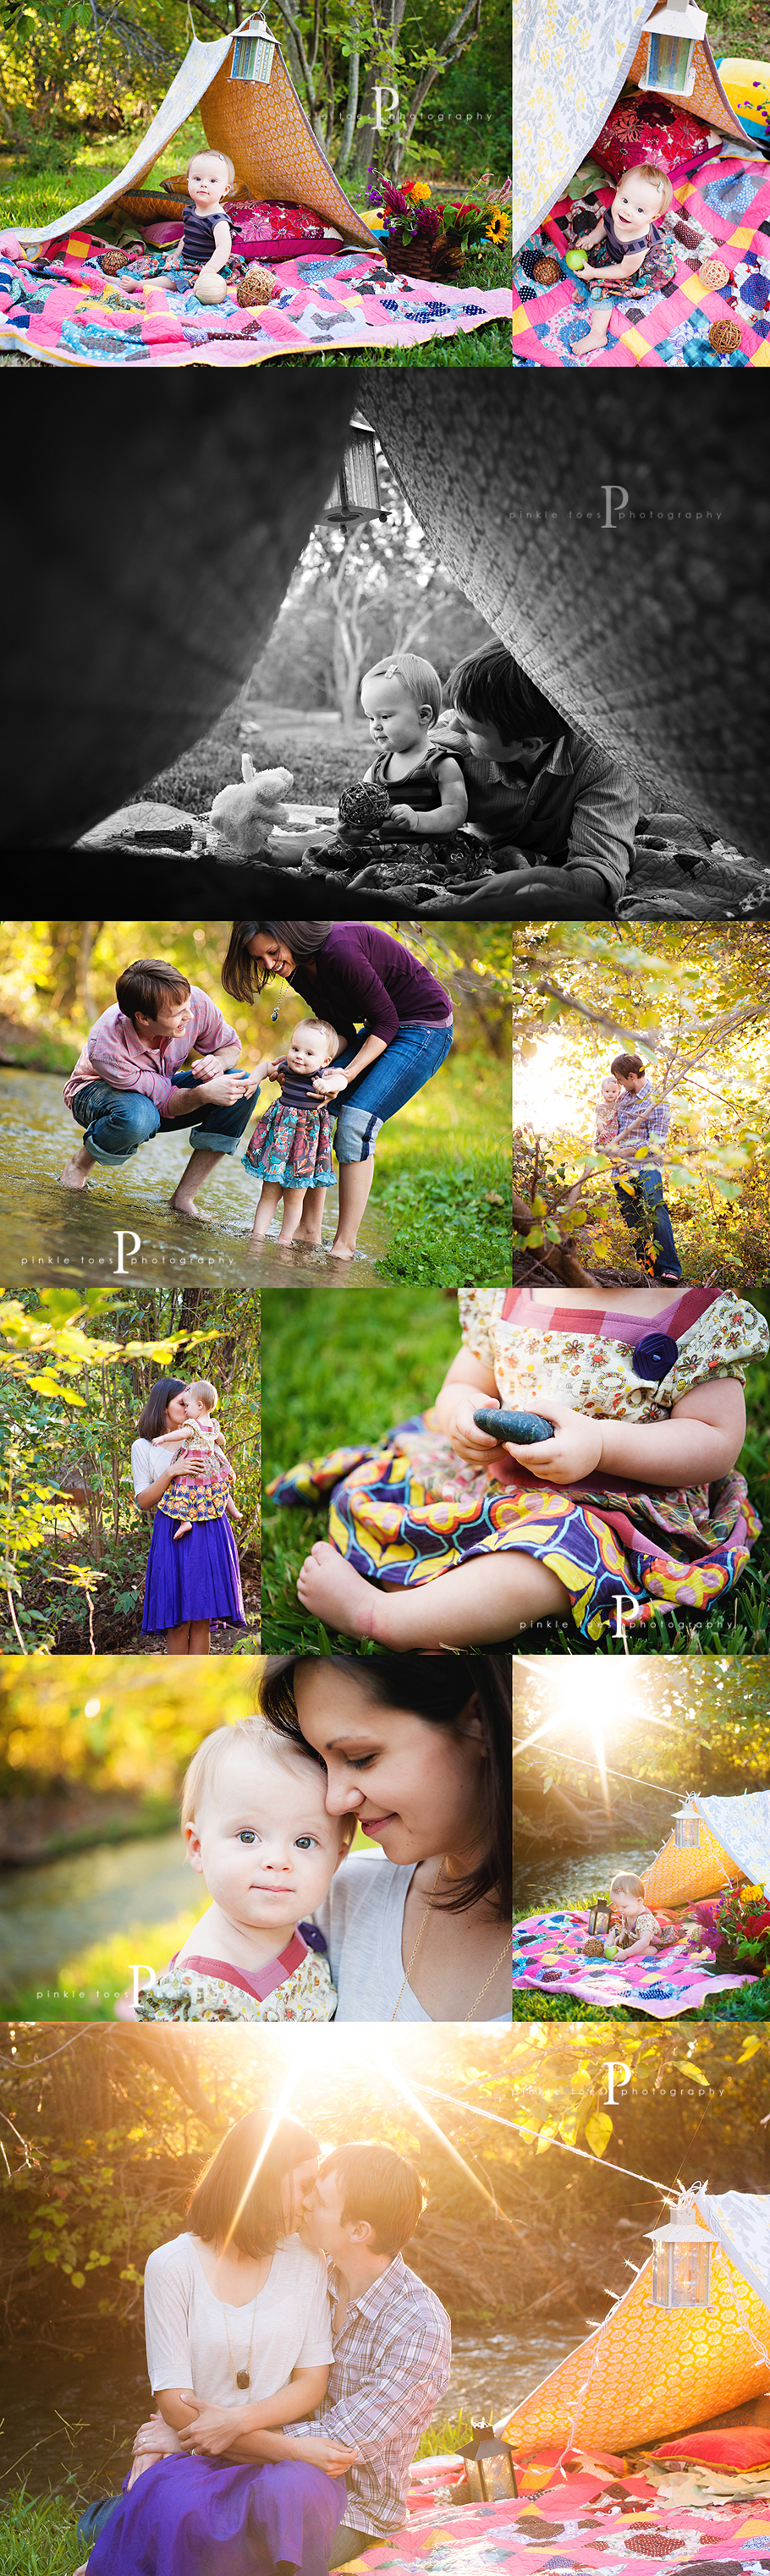 k-austin-lifestyle-outdoor-family-photographer.jpg